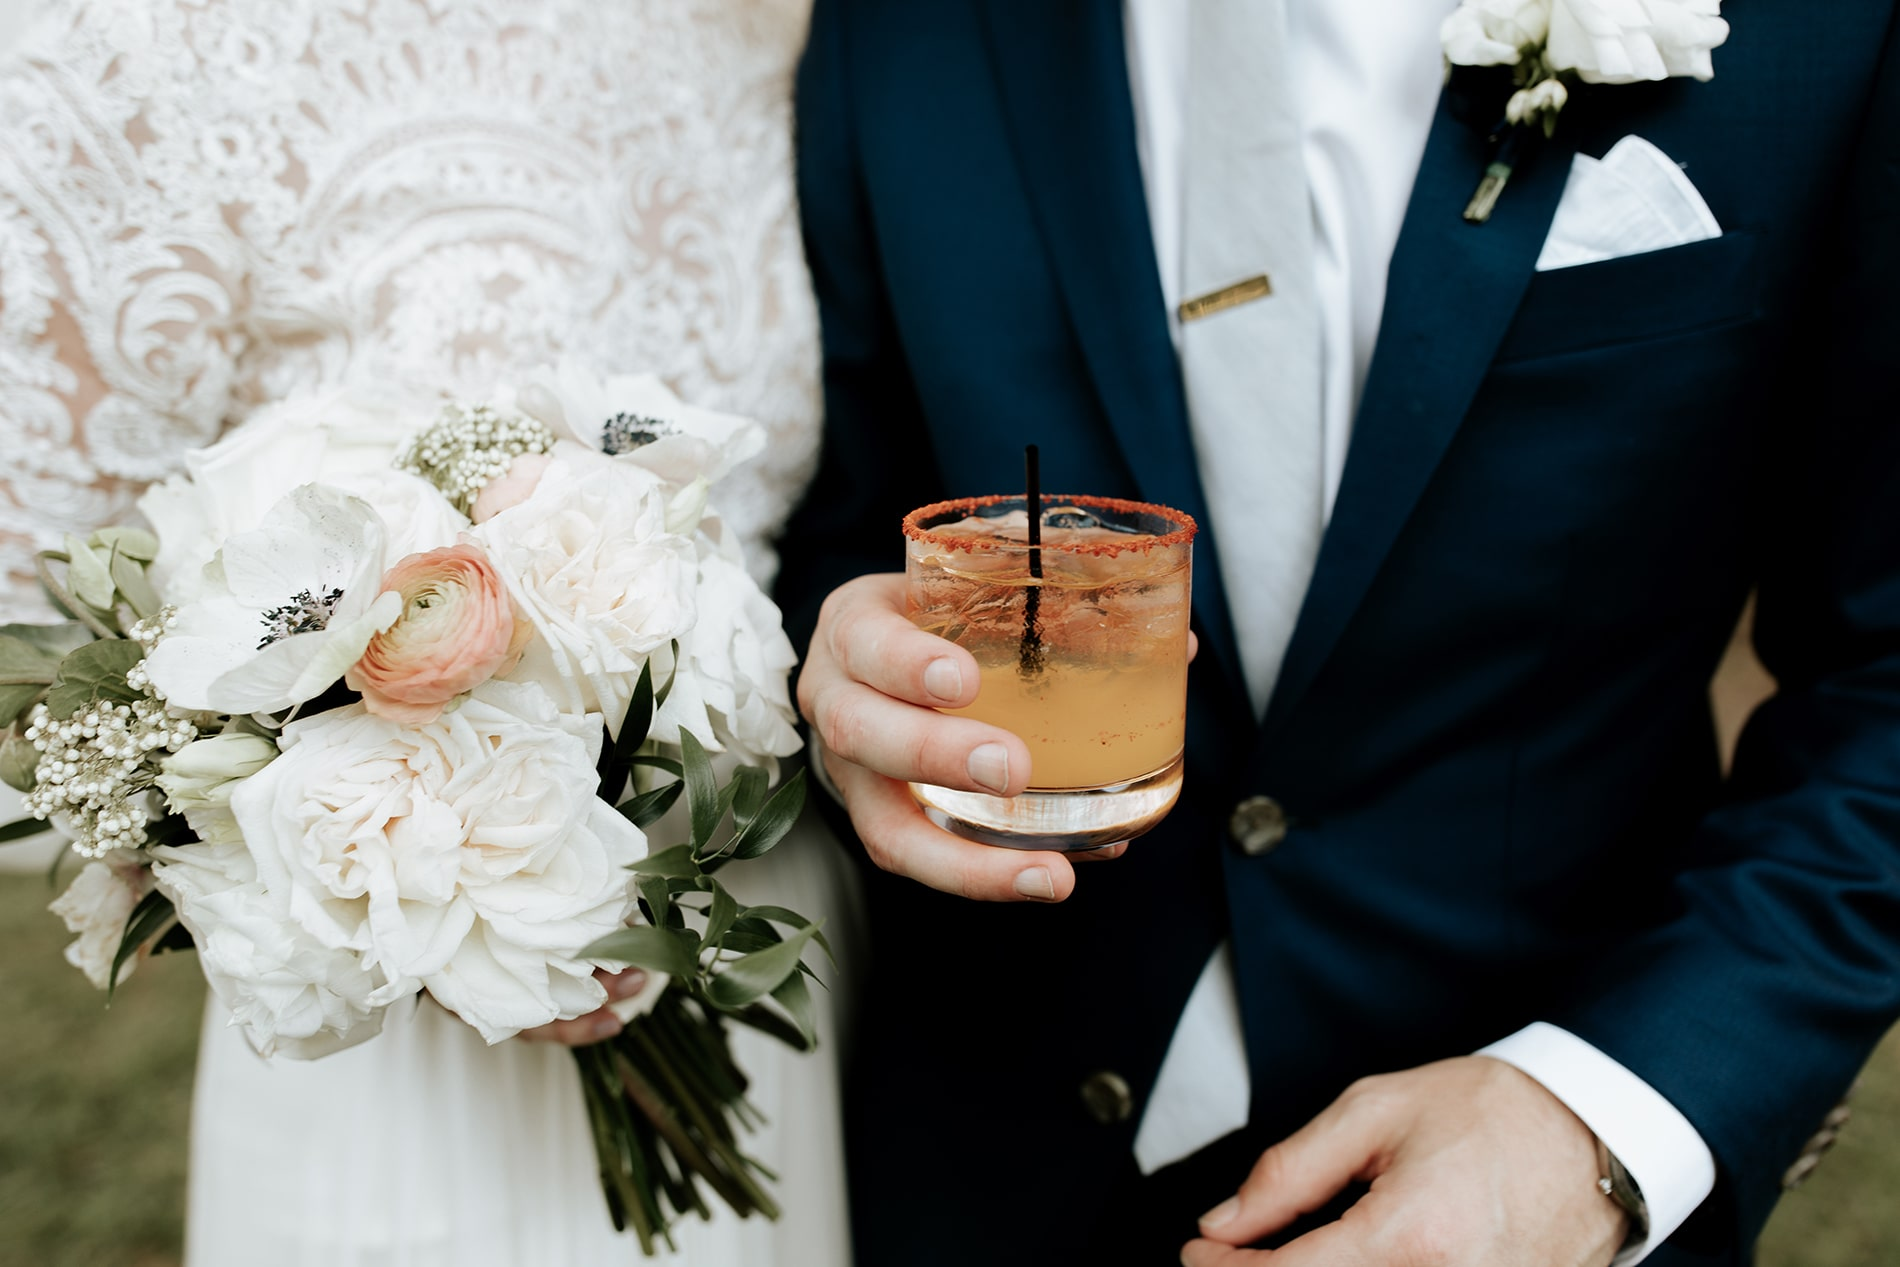 lowcountry-kitchen-catering-beaufort-sc-mary-grace-and-judd-kennedy-wedding-ceremony-grooms-cocktail-min.jpg